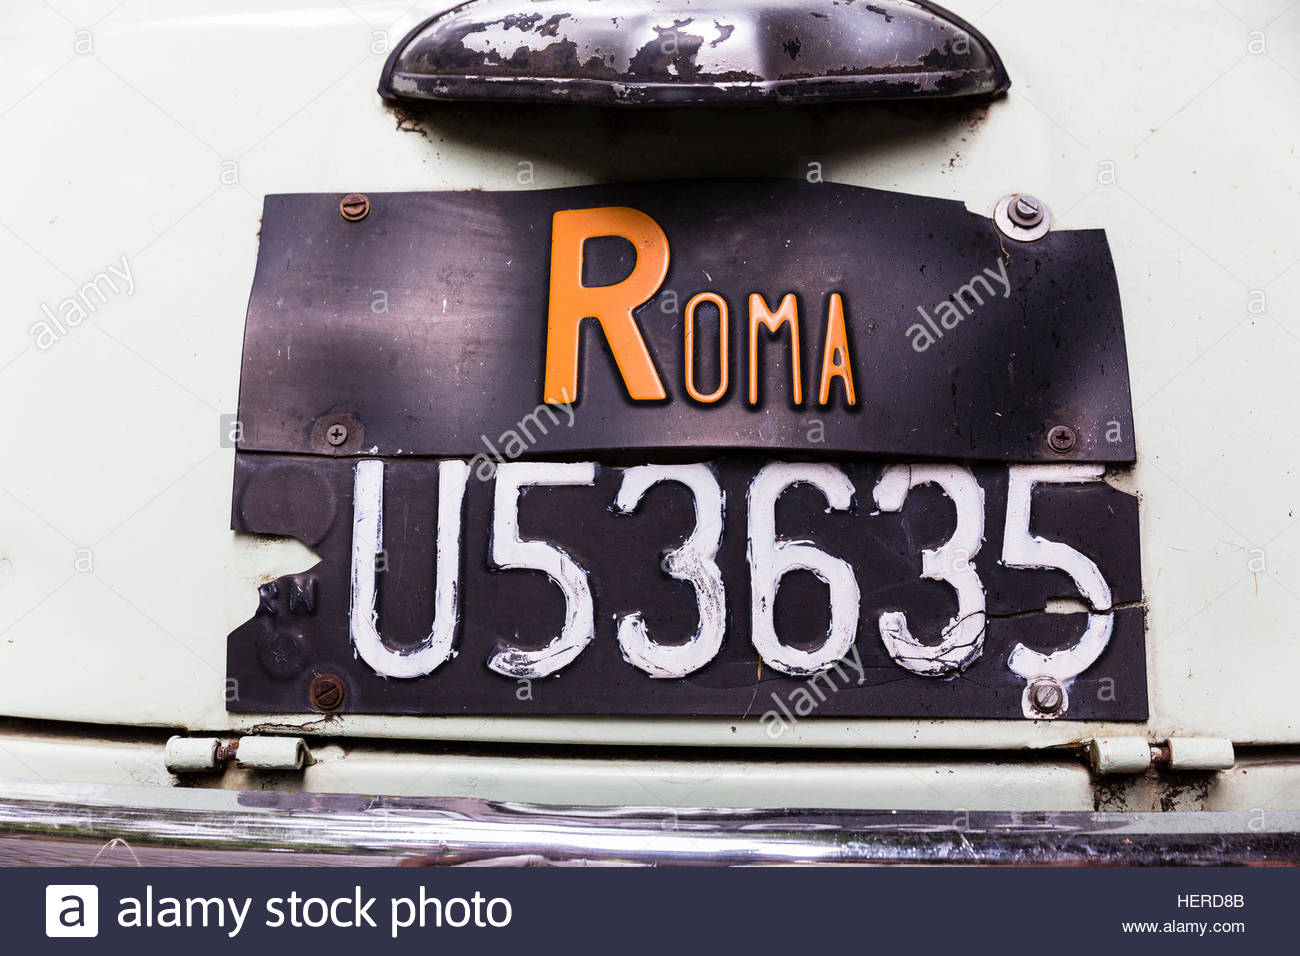 Archival,Bumper,Capital Cities,car,classic car,close-up,Colour Image,Fiat 500 L,Horizontal,No People,Photography,Registration - Stock Image